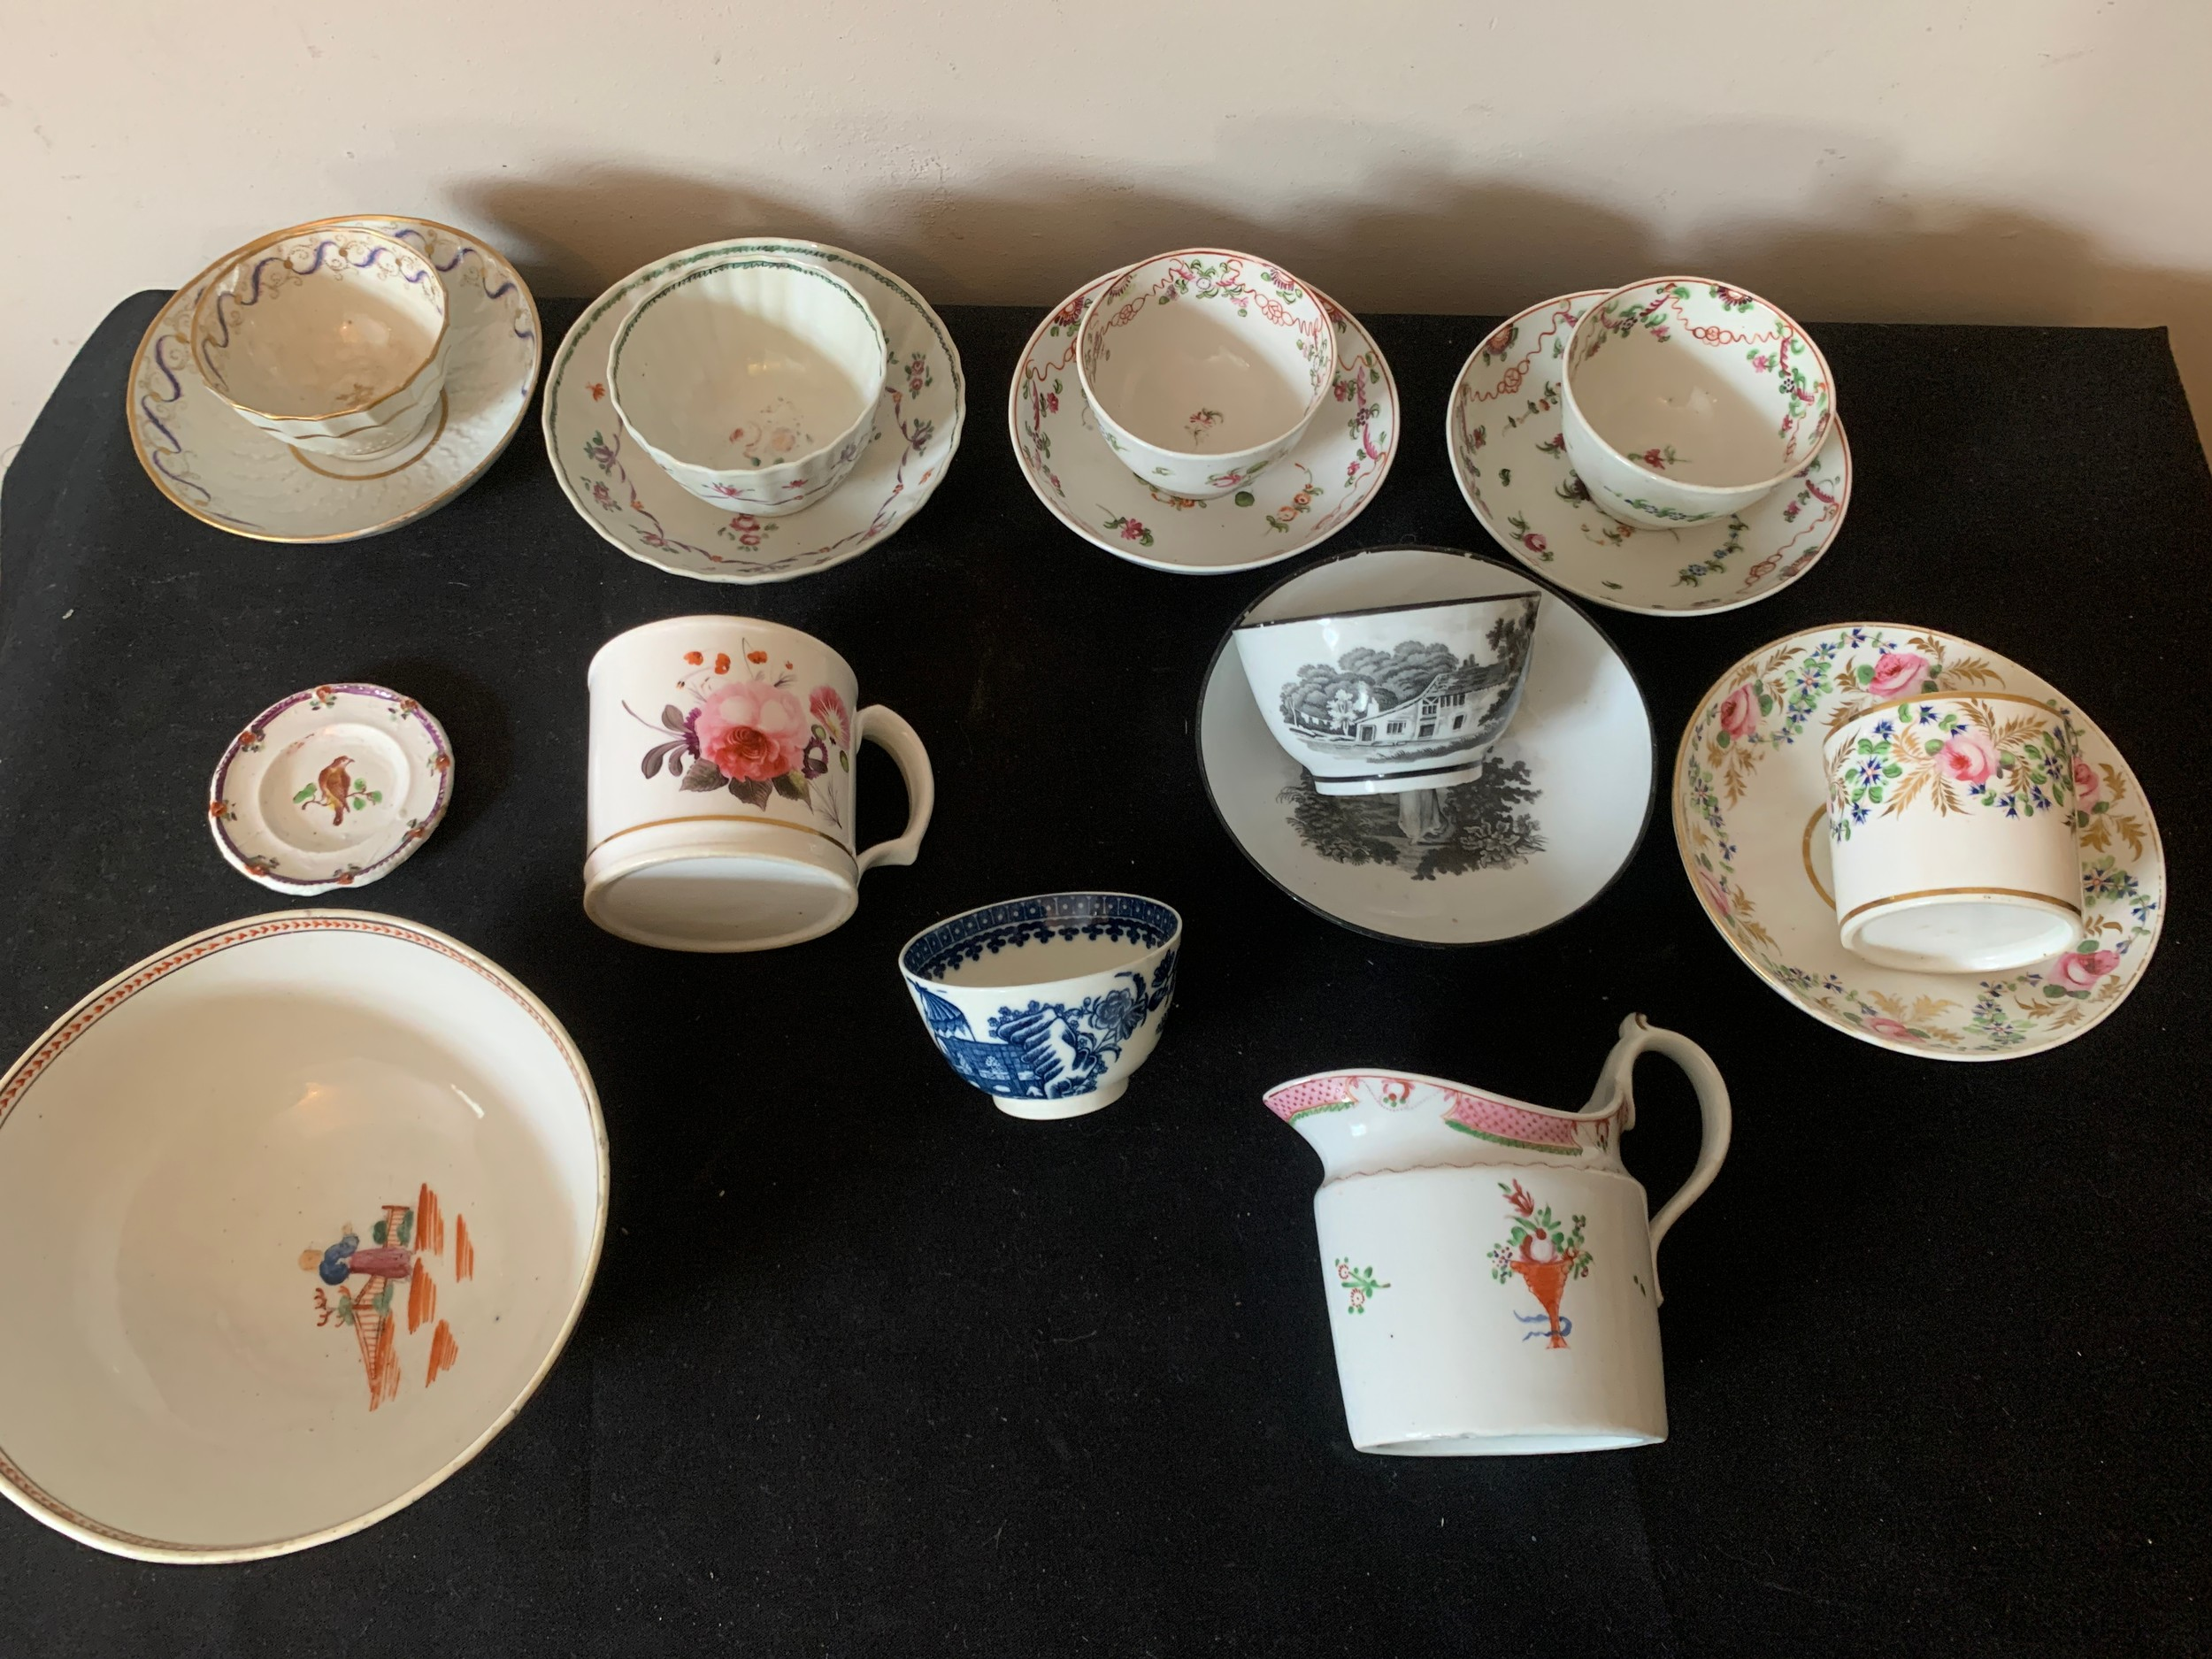 A quantity of 18thC/19thC ceramics to include tea cups, bowls, saucers, jug and child's plate. - Image 2 of 2